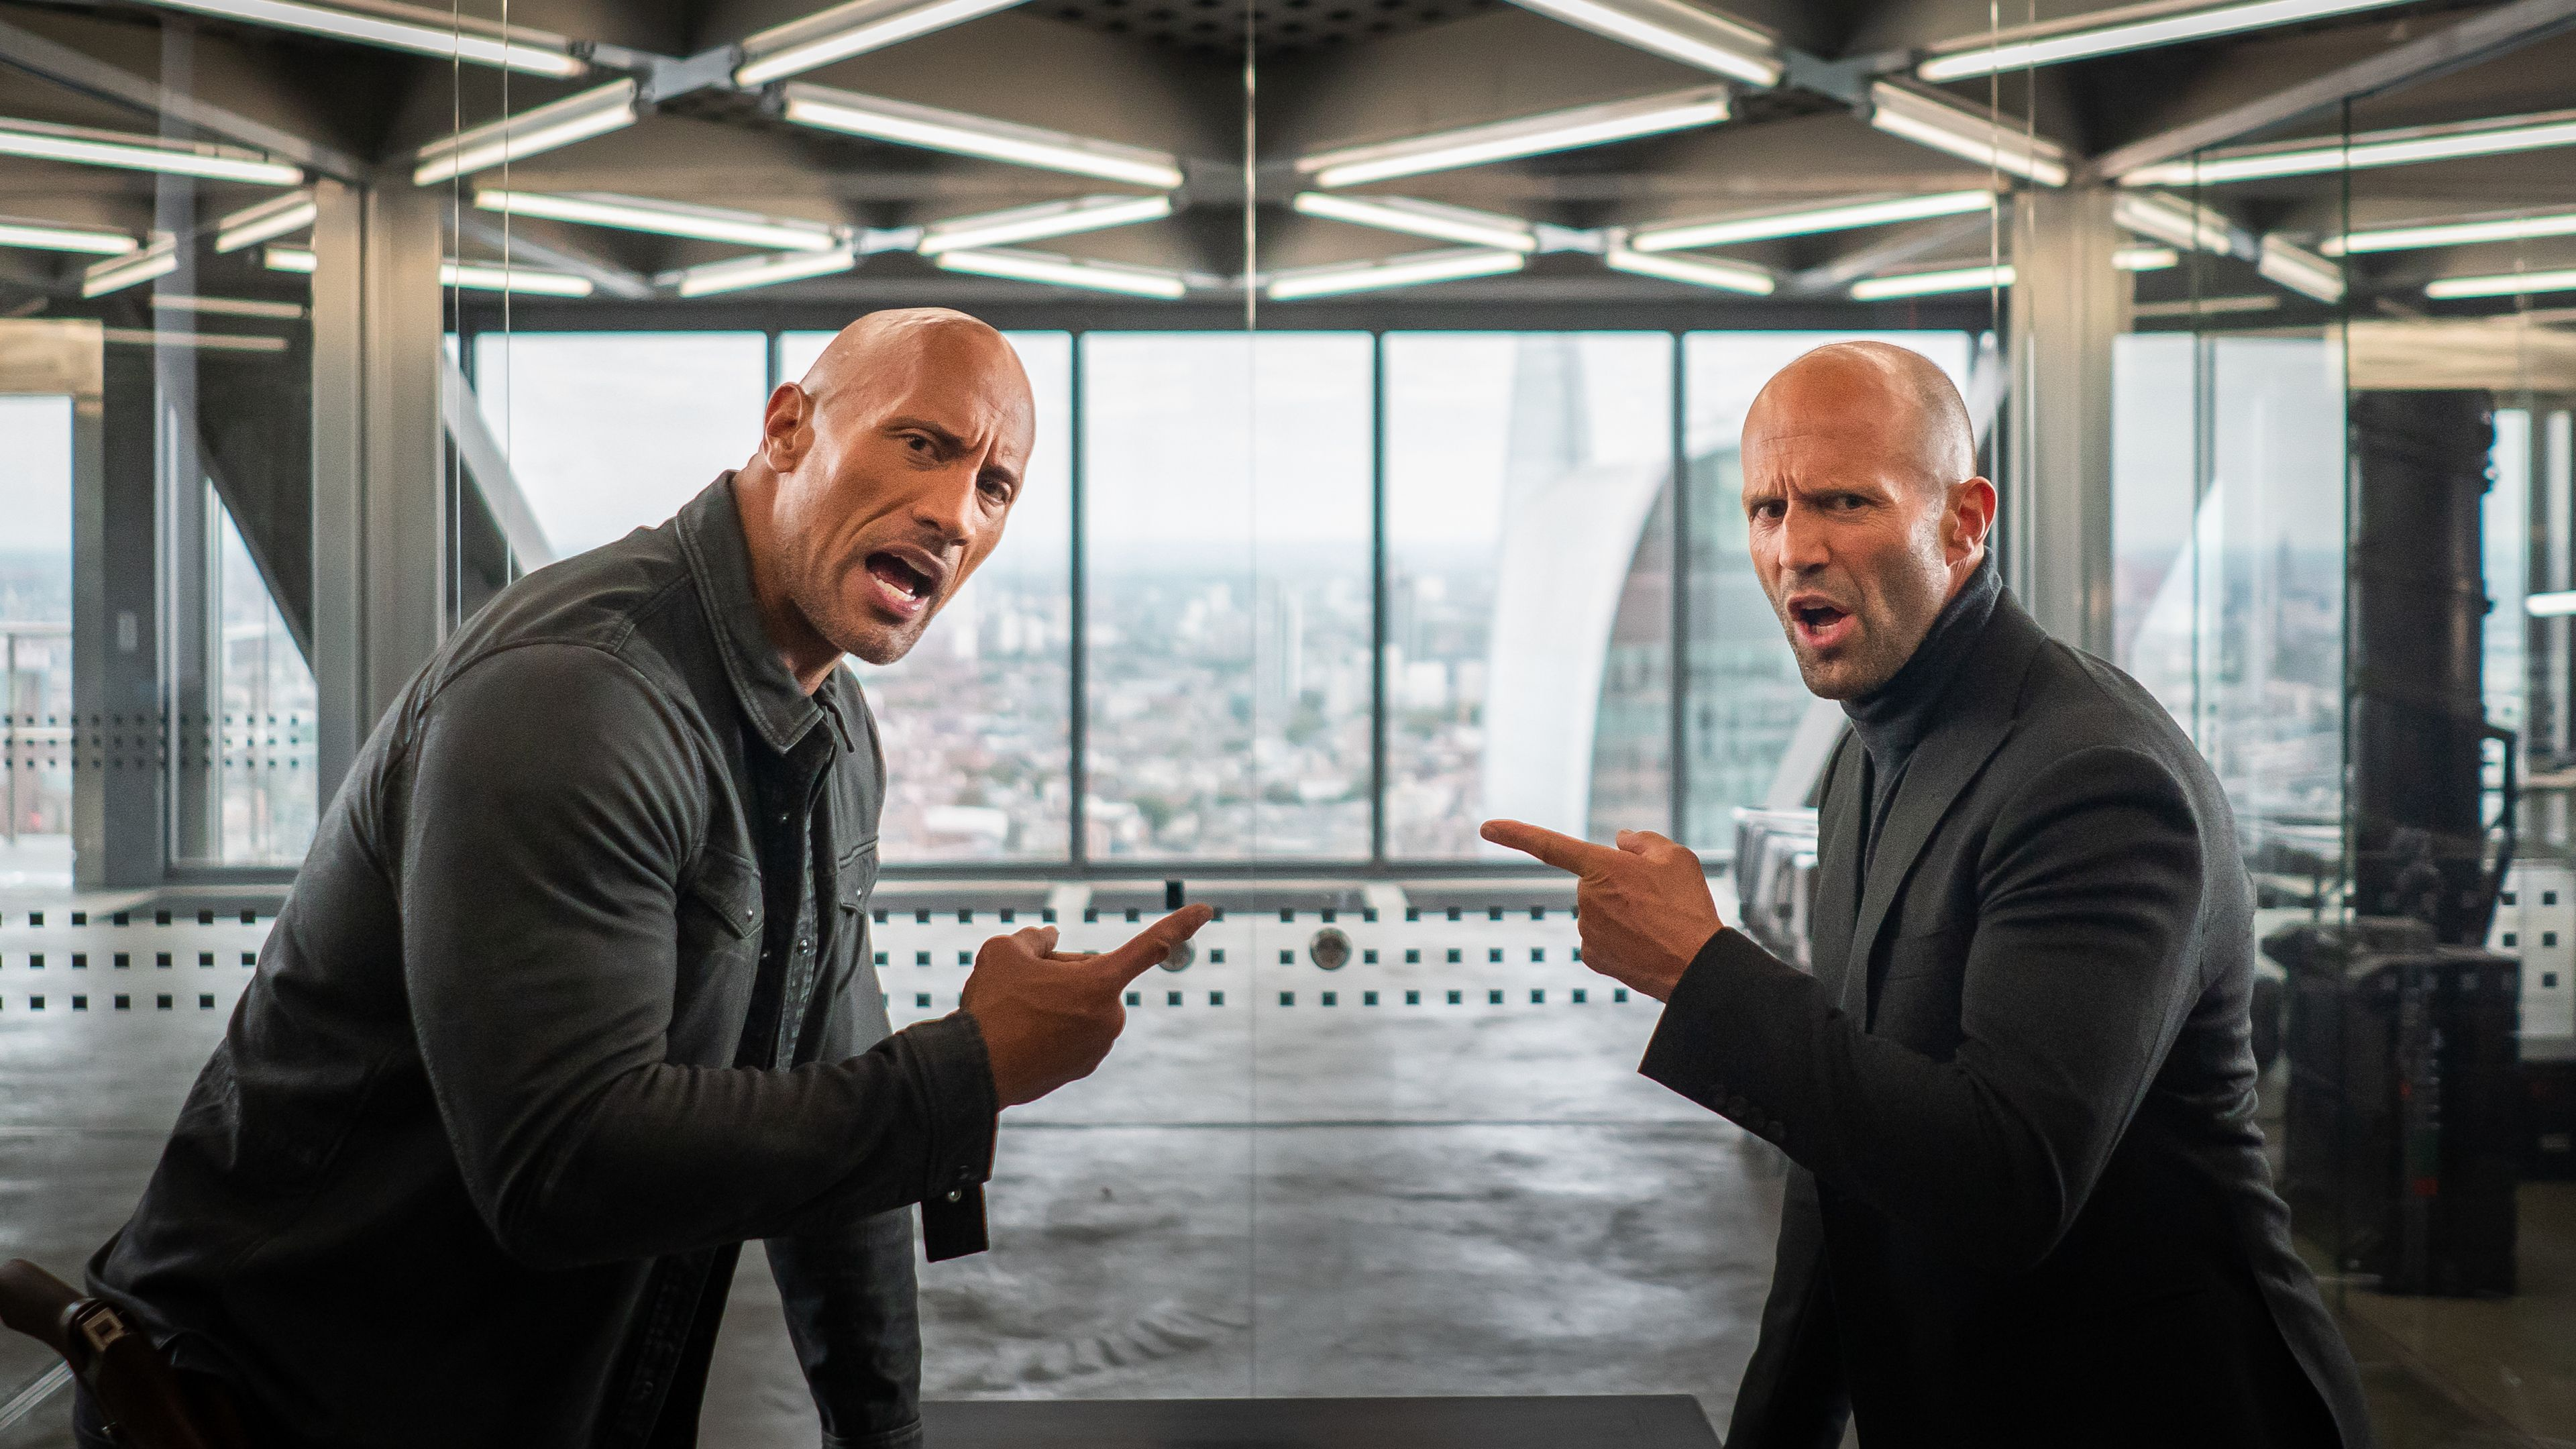 Hobbs And Shaw 4k Movies Wallpapers Jason Statham Wallpapers Hobbs And Shaw Wallpapers Hd Wallpapers Dwayne J Fast And Furious Hobbs Movie Fast And Furious